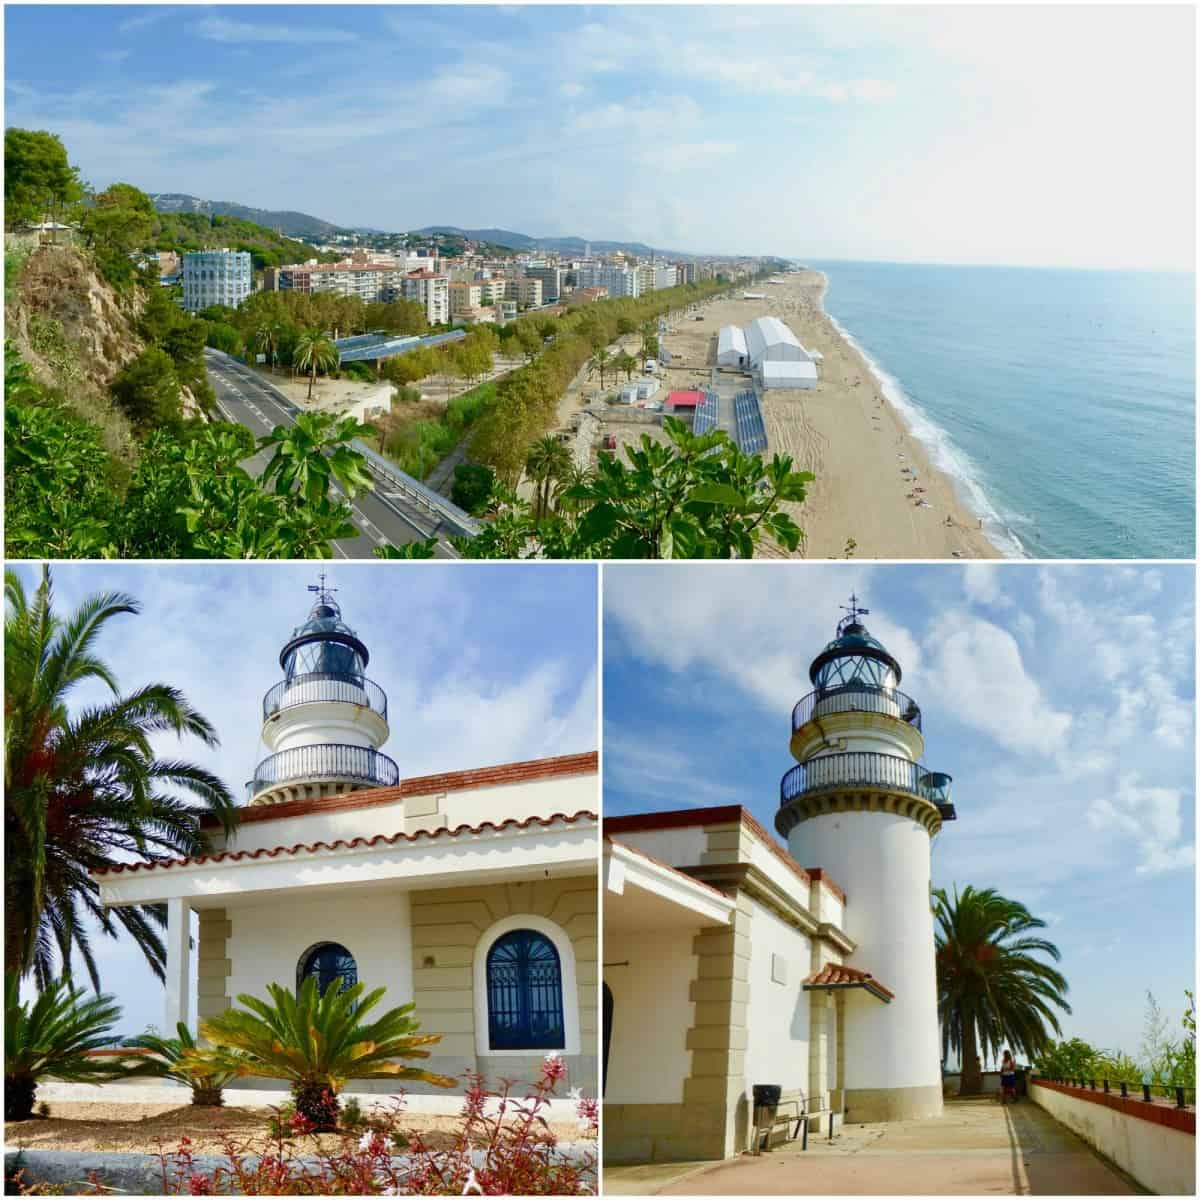 Attractions-near-Barcelona-Calella-Lighthouse